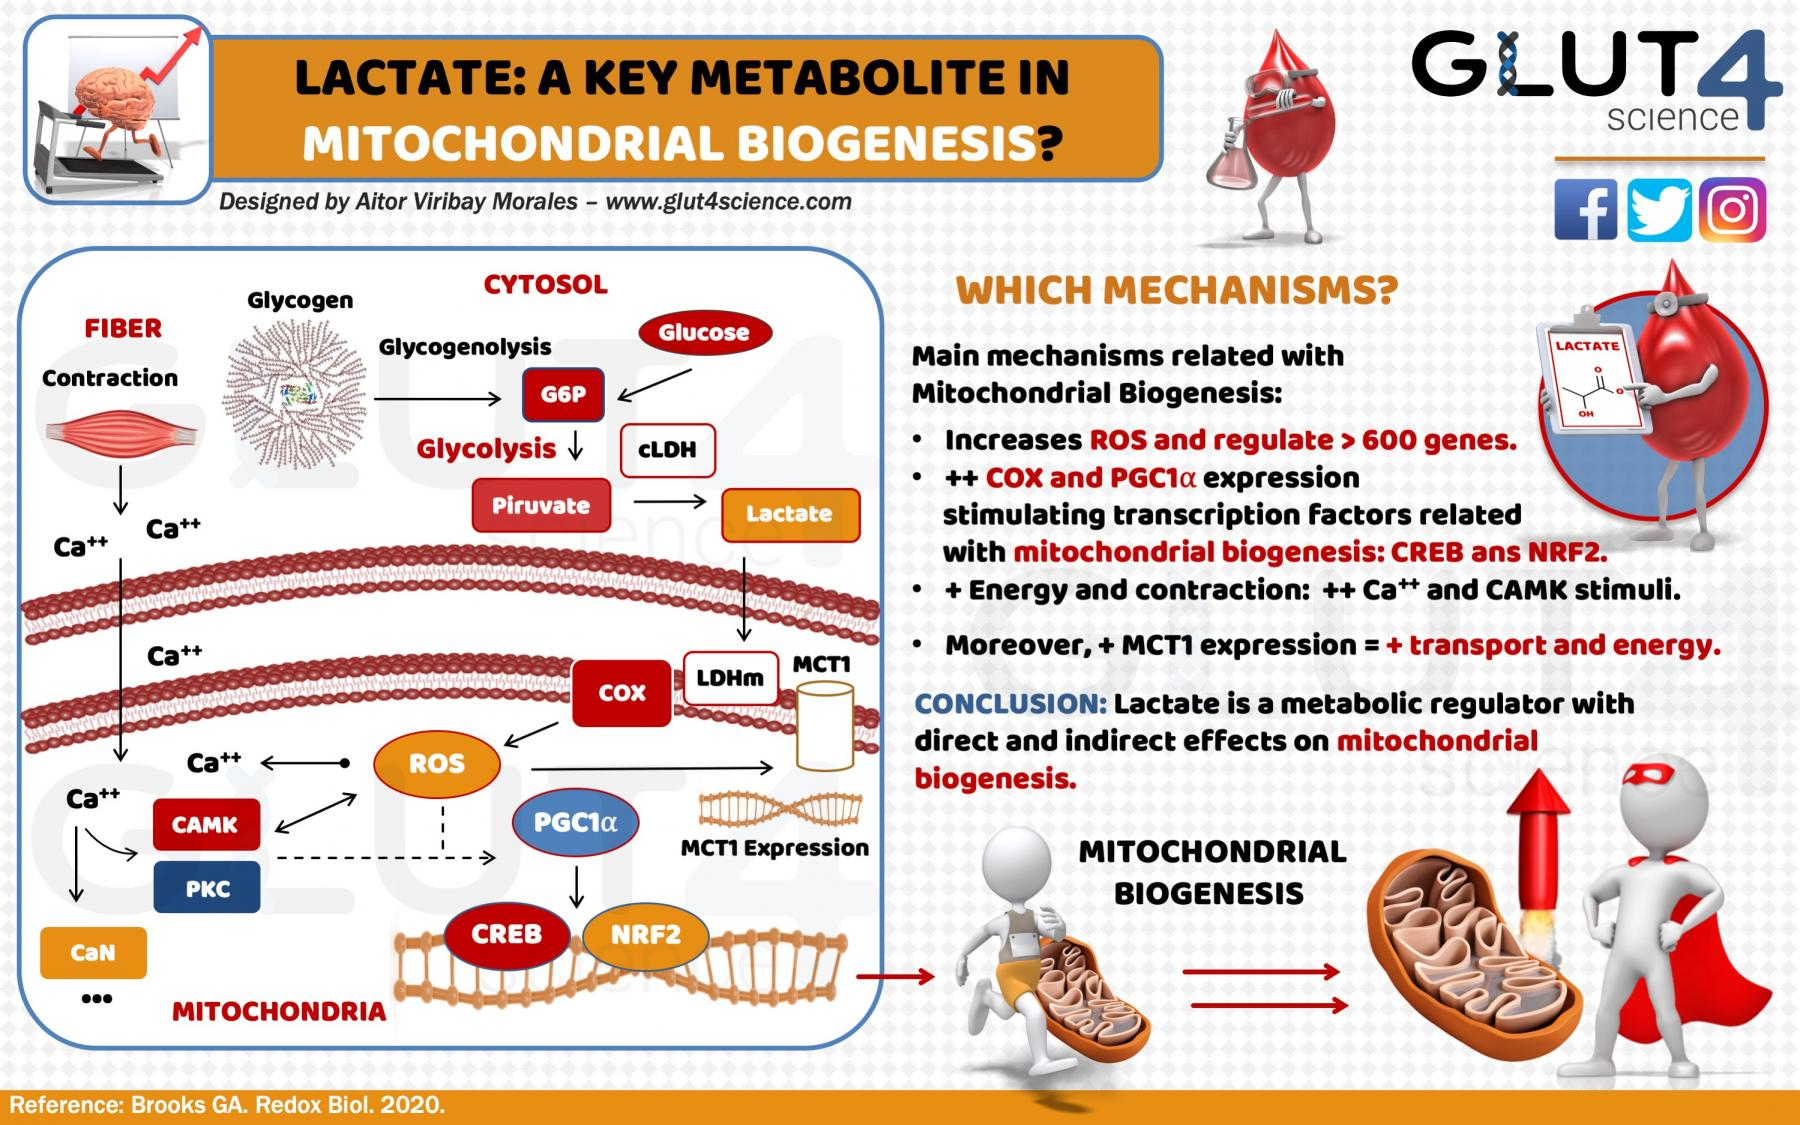 Lactate and Mitochondrial Biogenesis: A key metabolite?